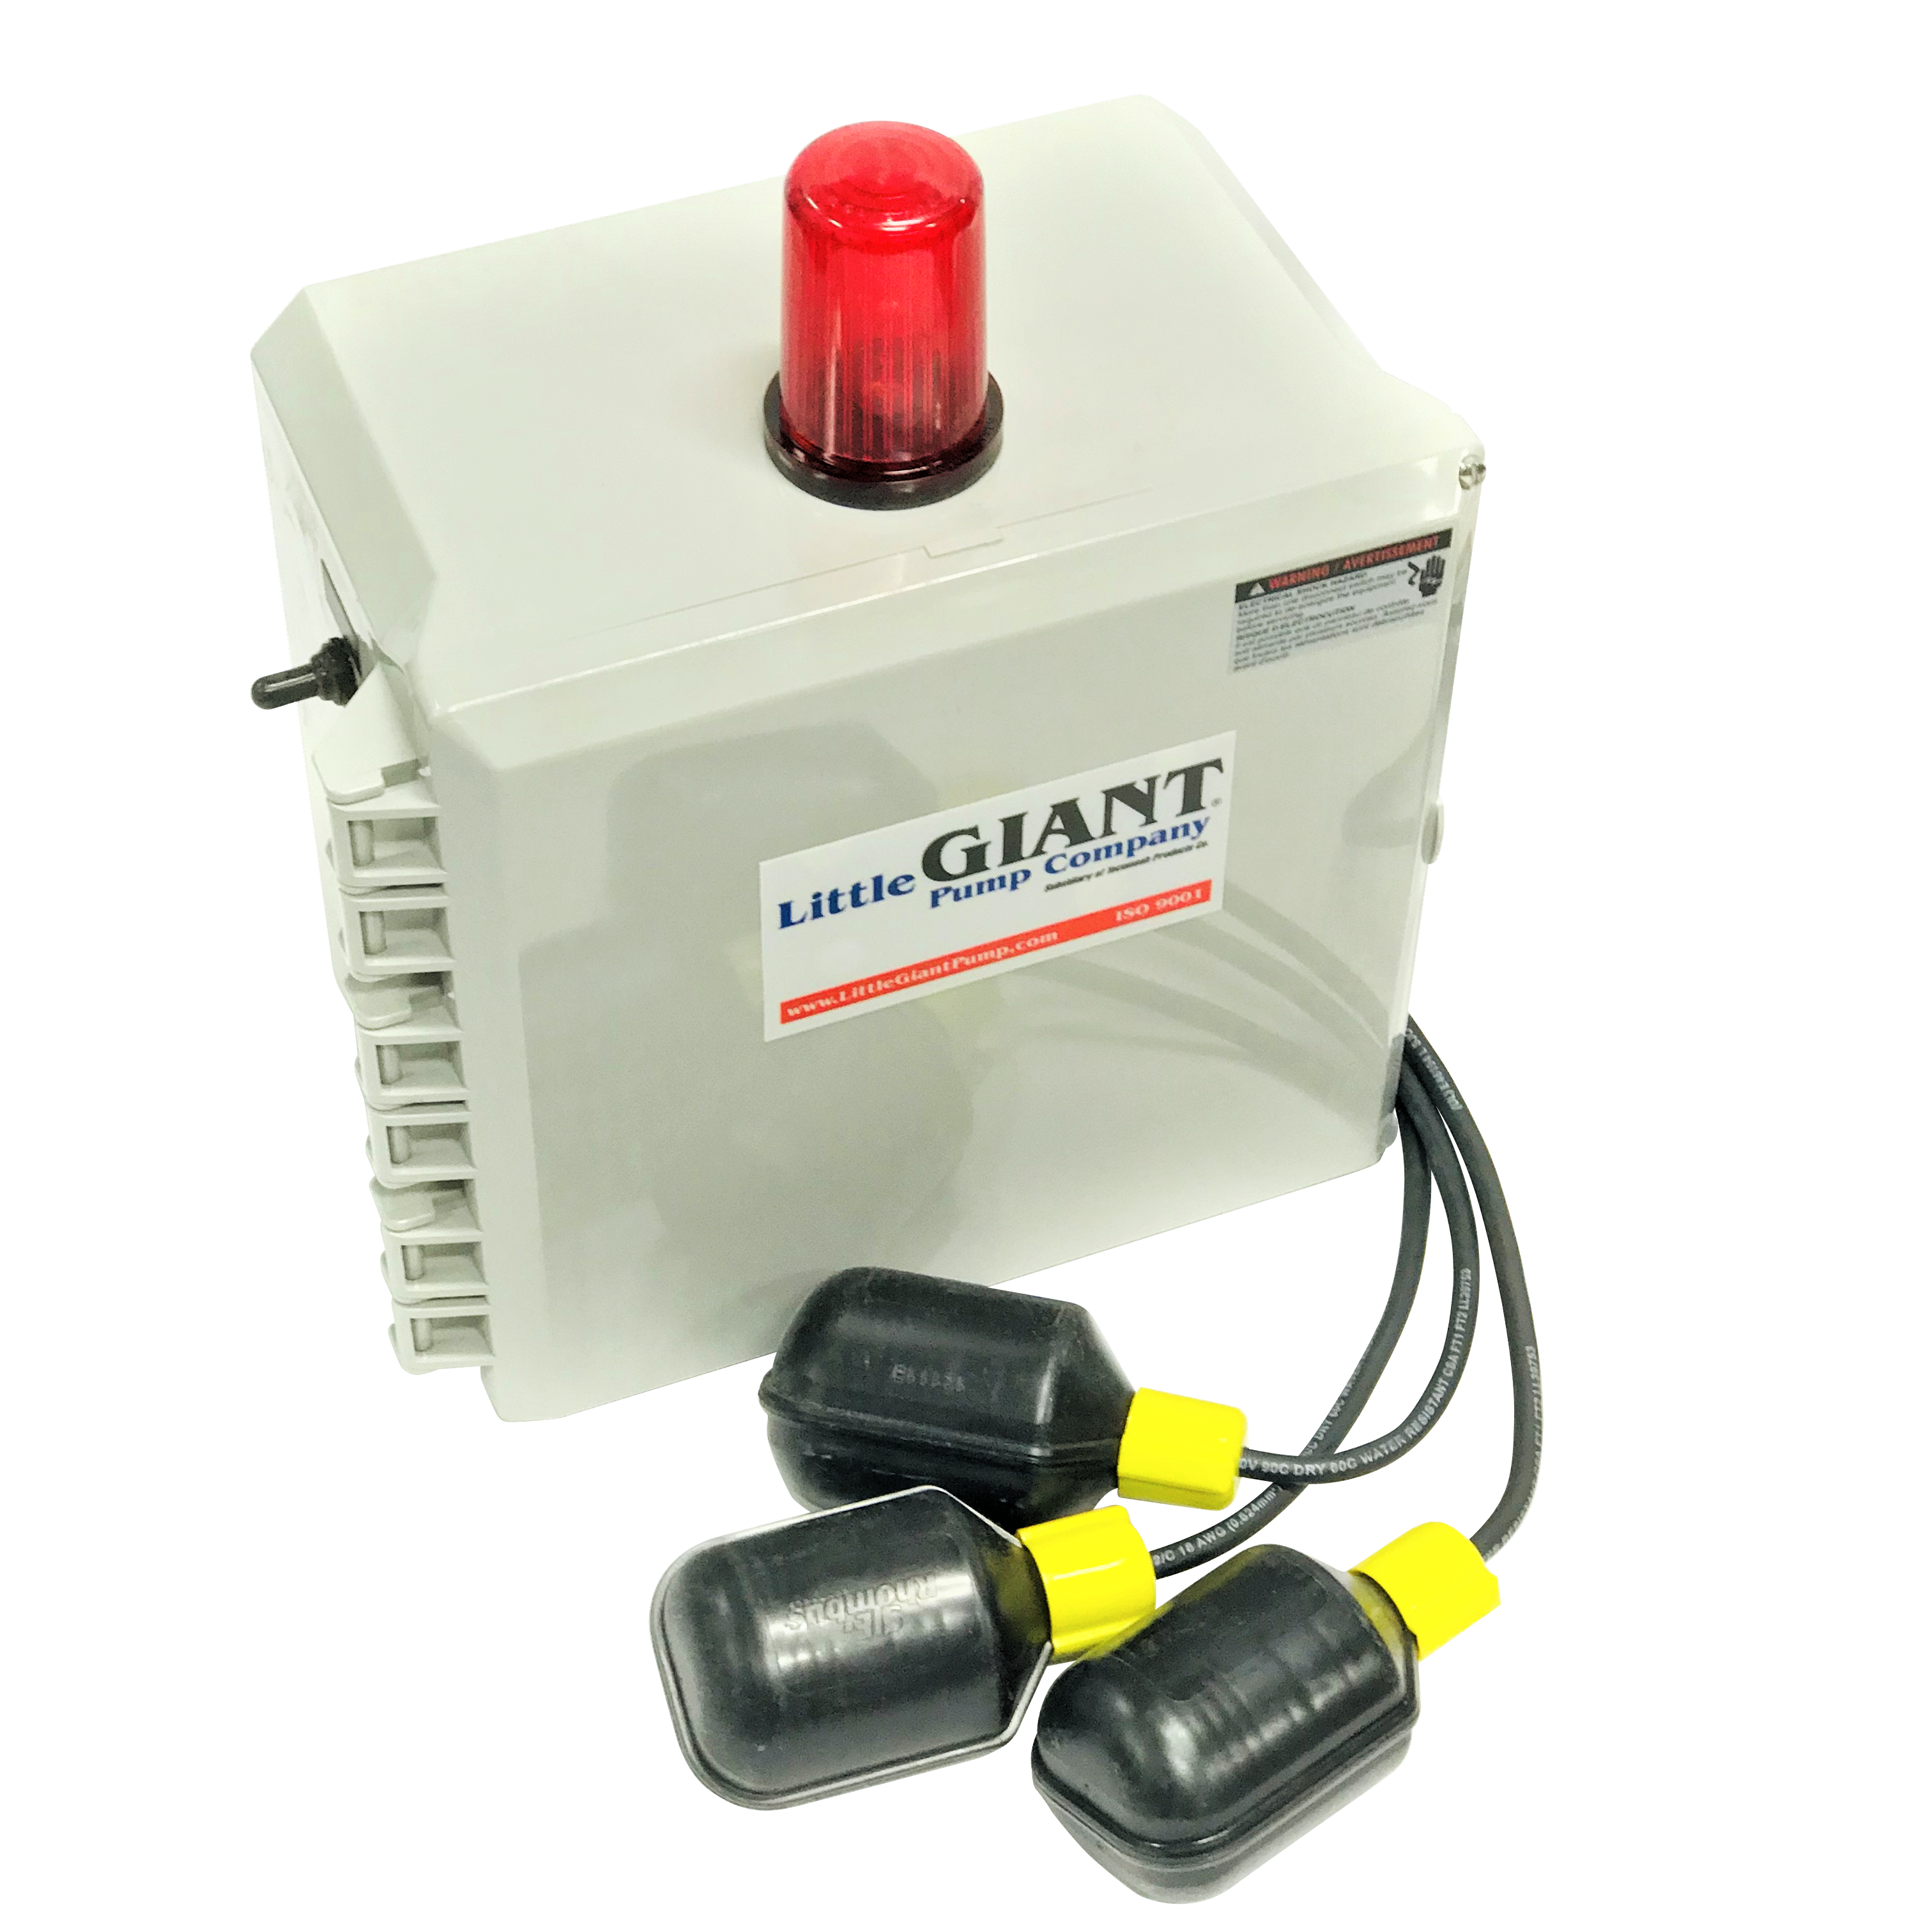 Little Giant 513258 Single Phase Indoor/Outdoor Duplex Alarm System and Pump Control